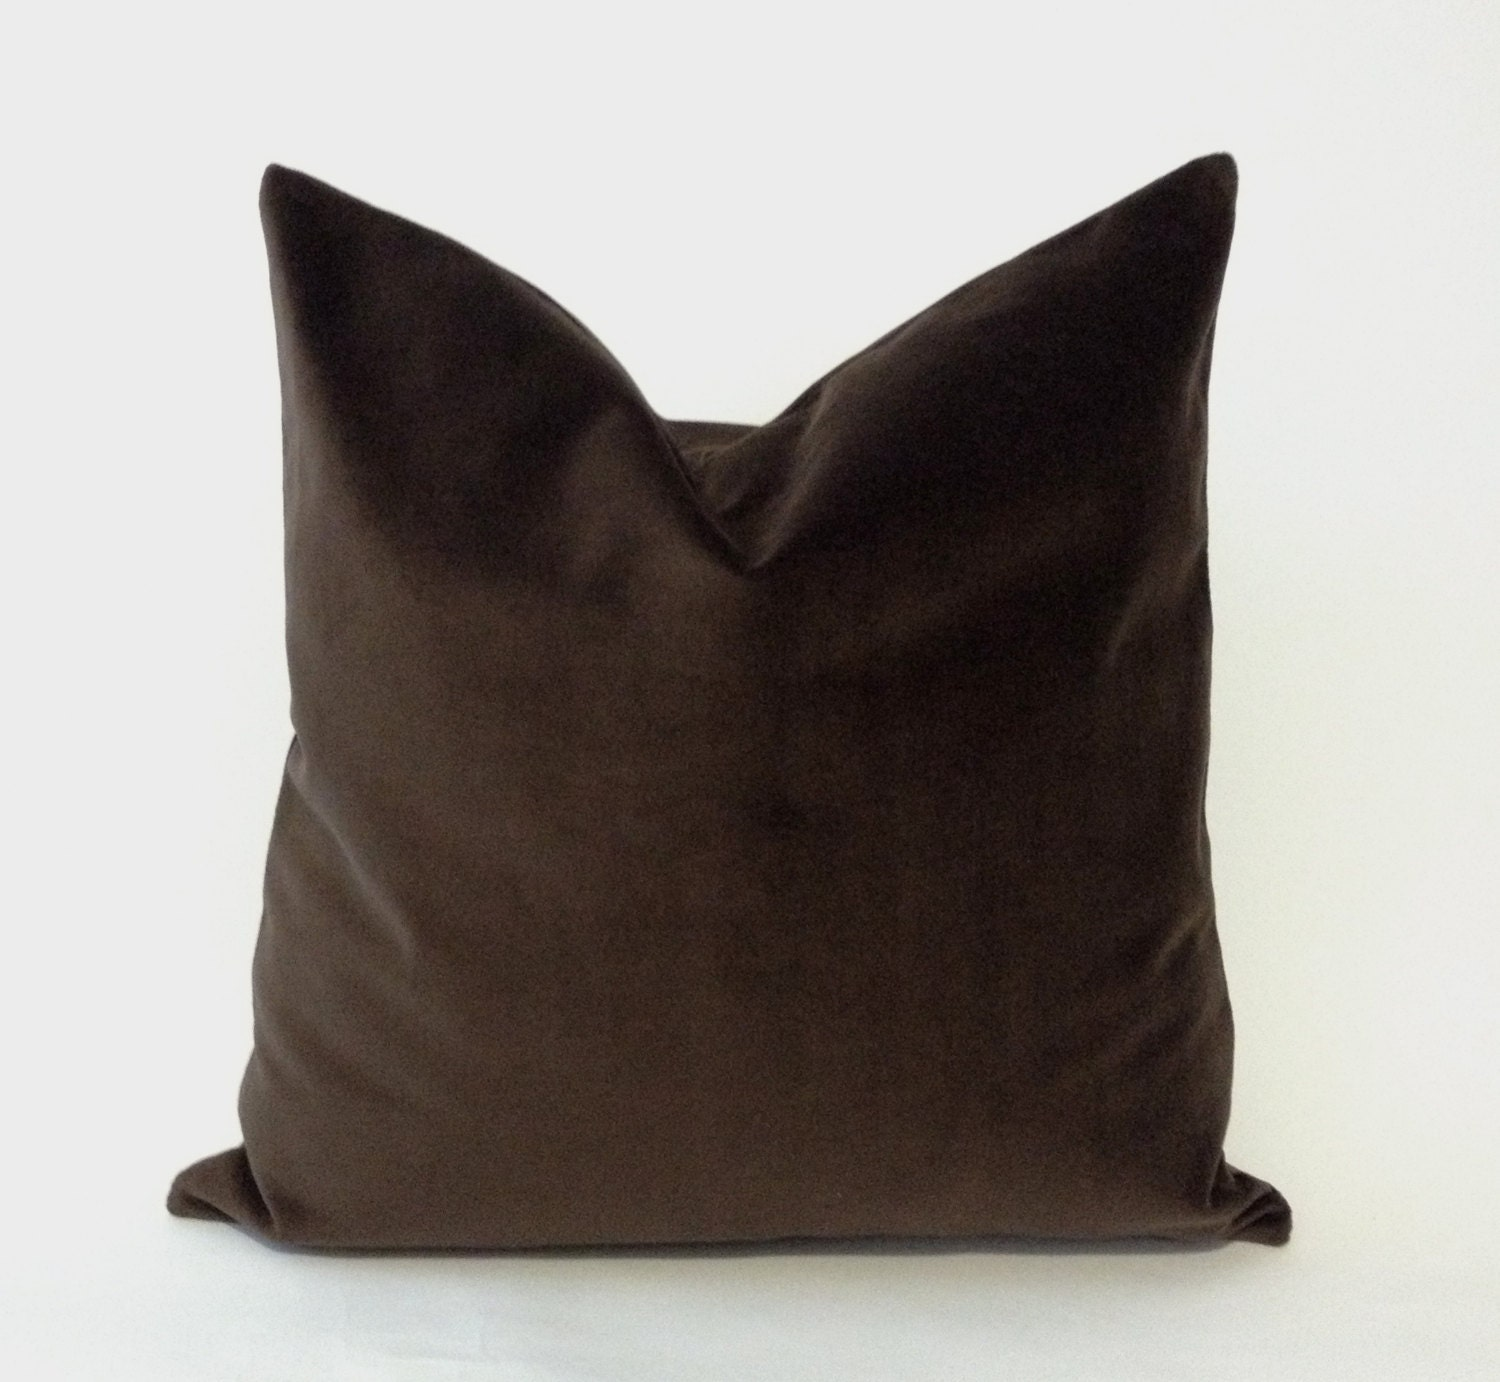 20x20 To 26x26 Chocolate Brown Decorative Pillow By